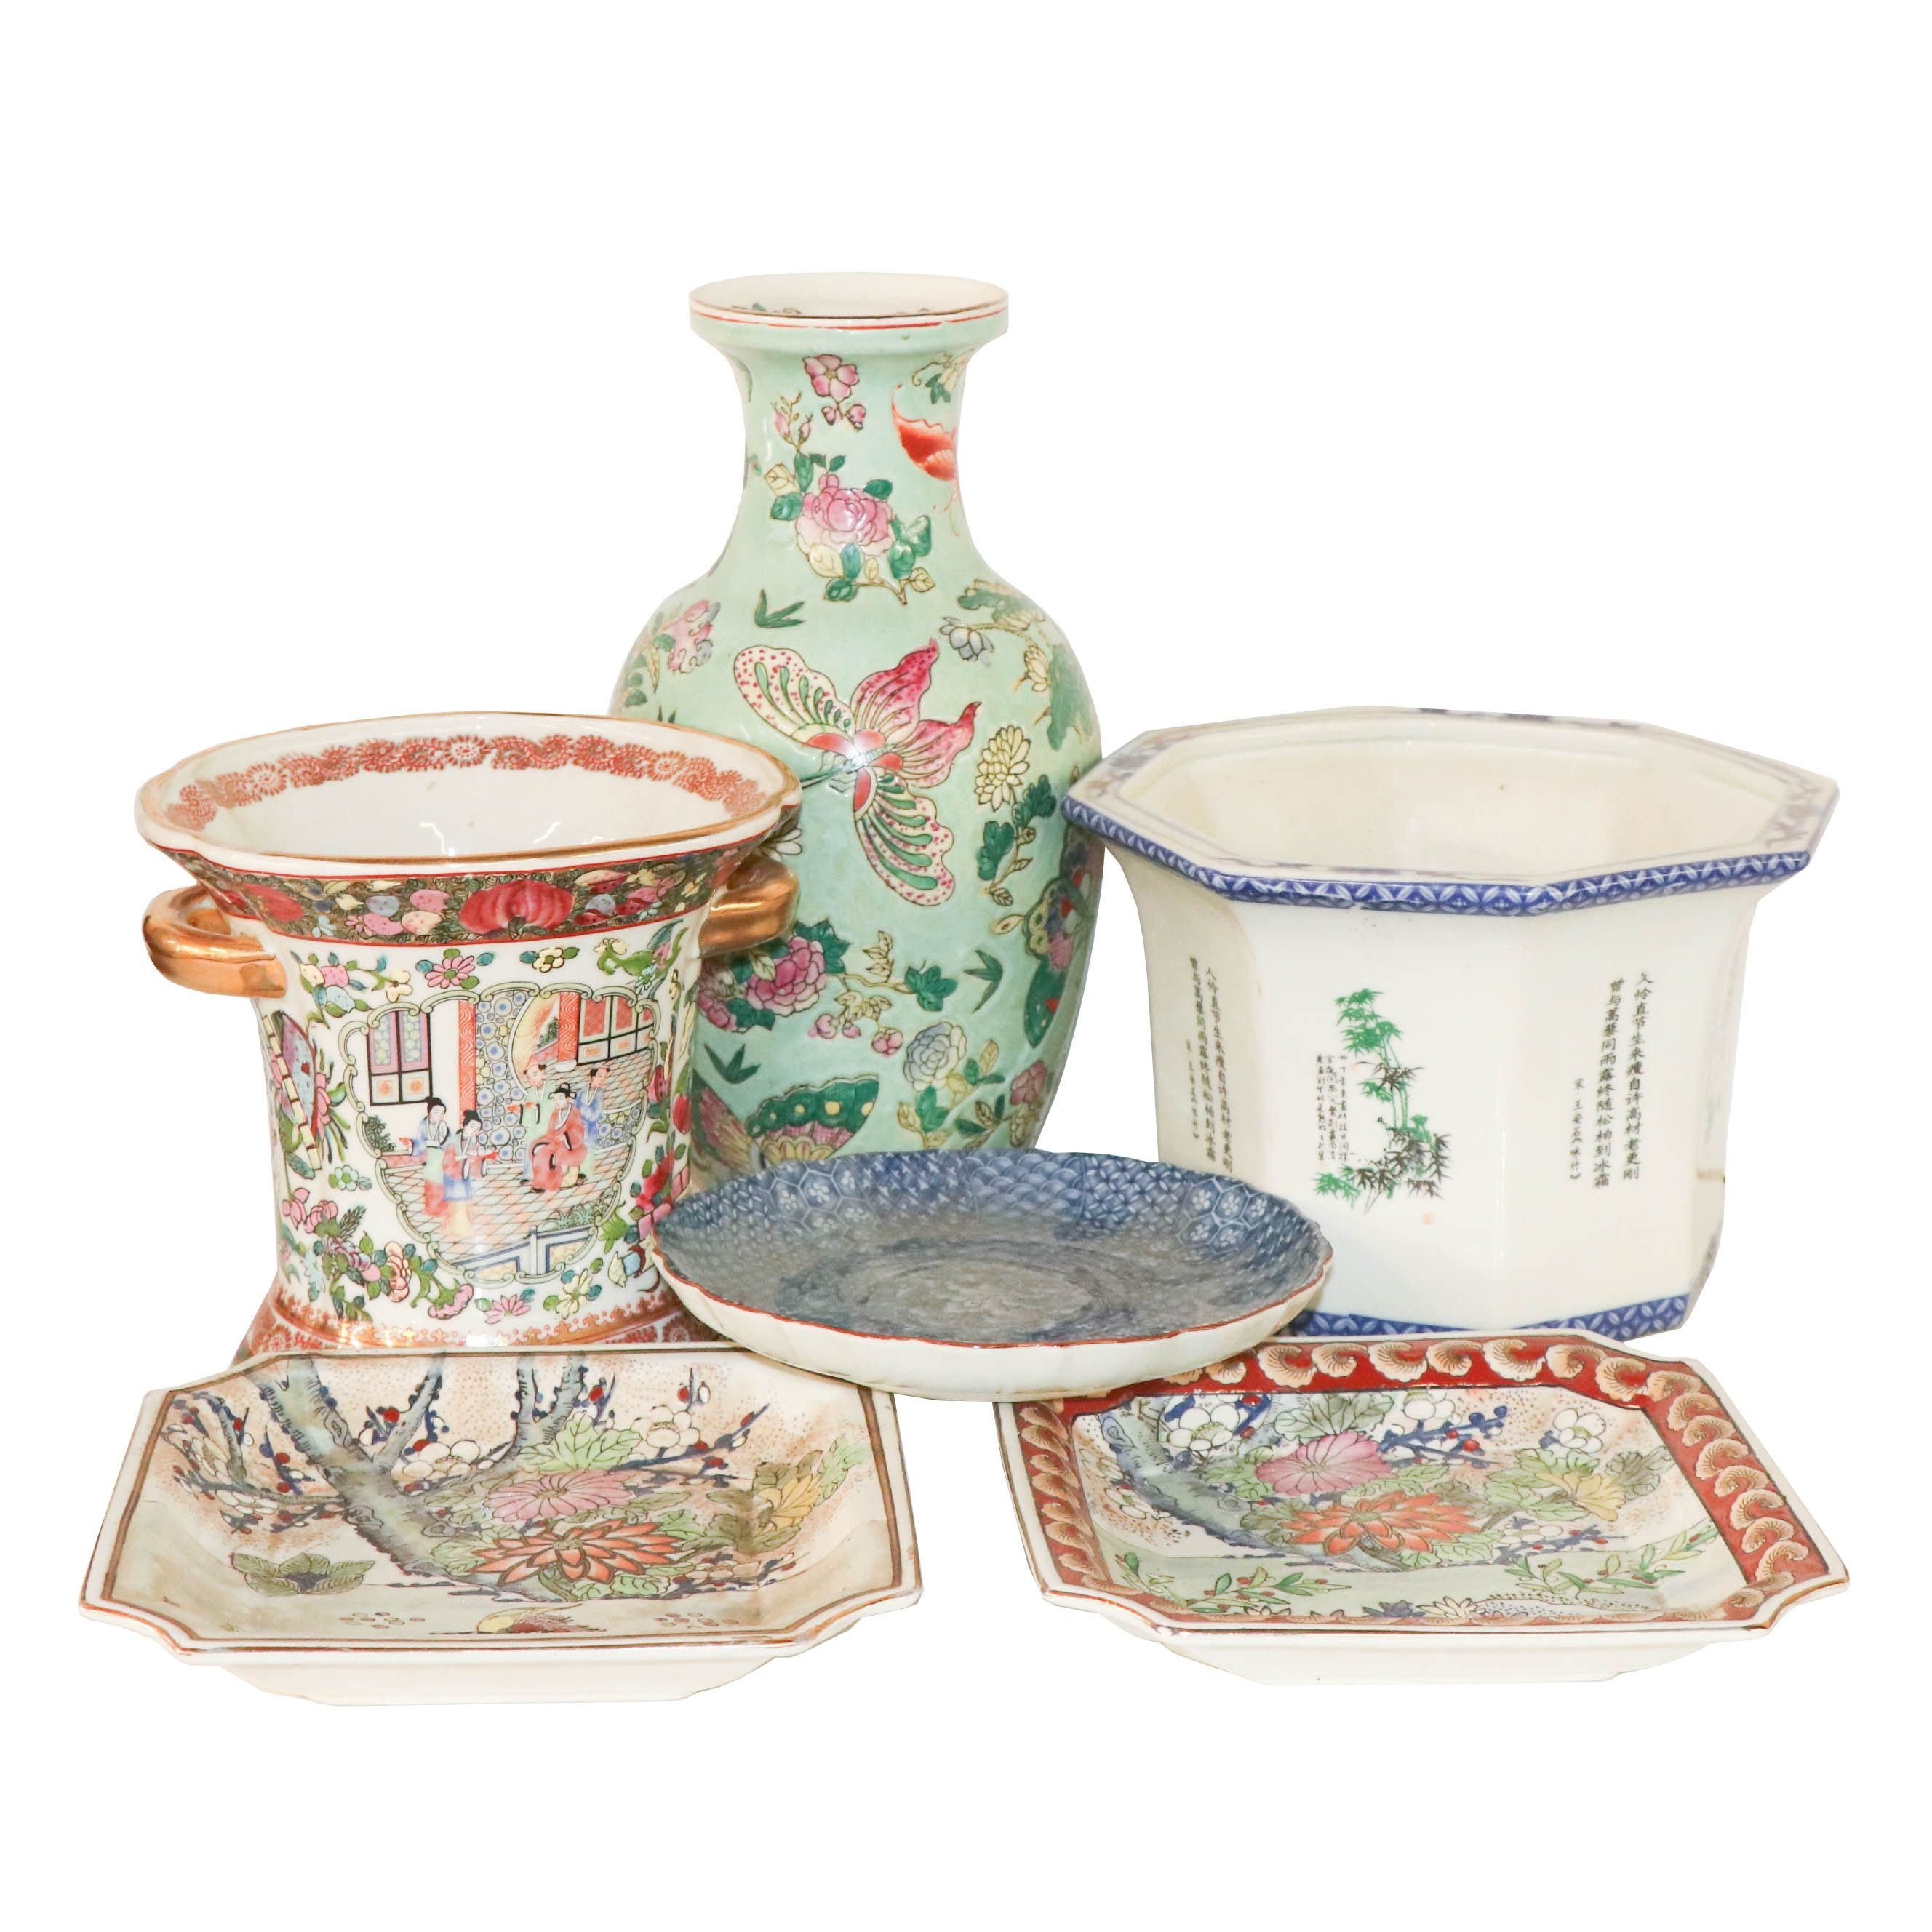 East Asian Ceramic Vase, Planters and Trays